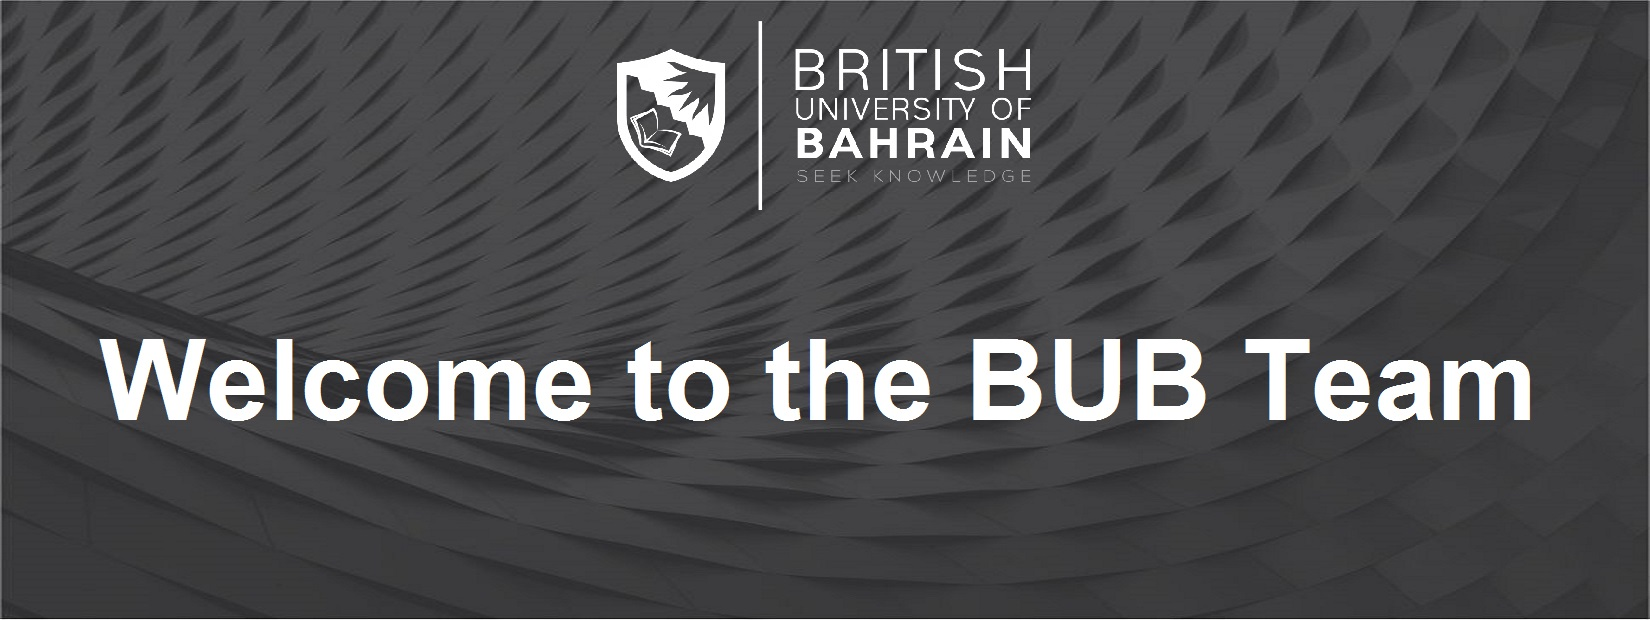 The British University of Bahrain is proud to recruit our latest member of staff into the BUB team. BUB employs highly qualified and educated members of staff to deliver the best UK education, available to study in Bahrain.